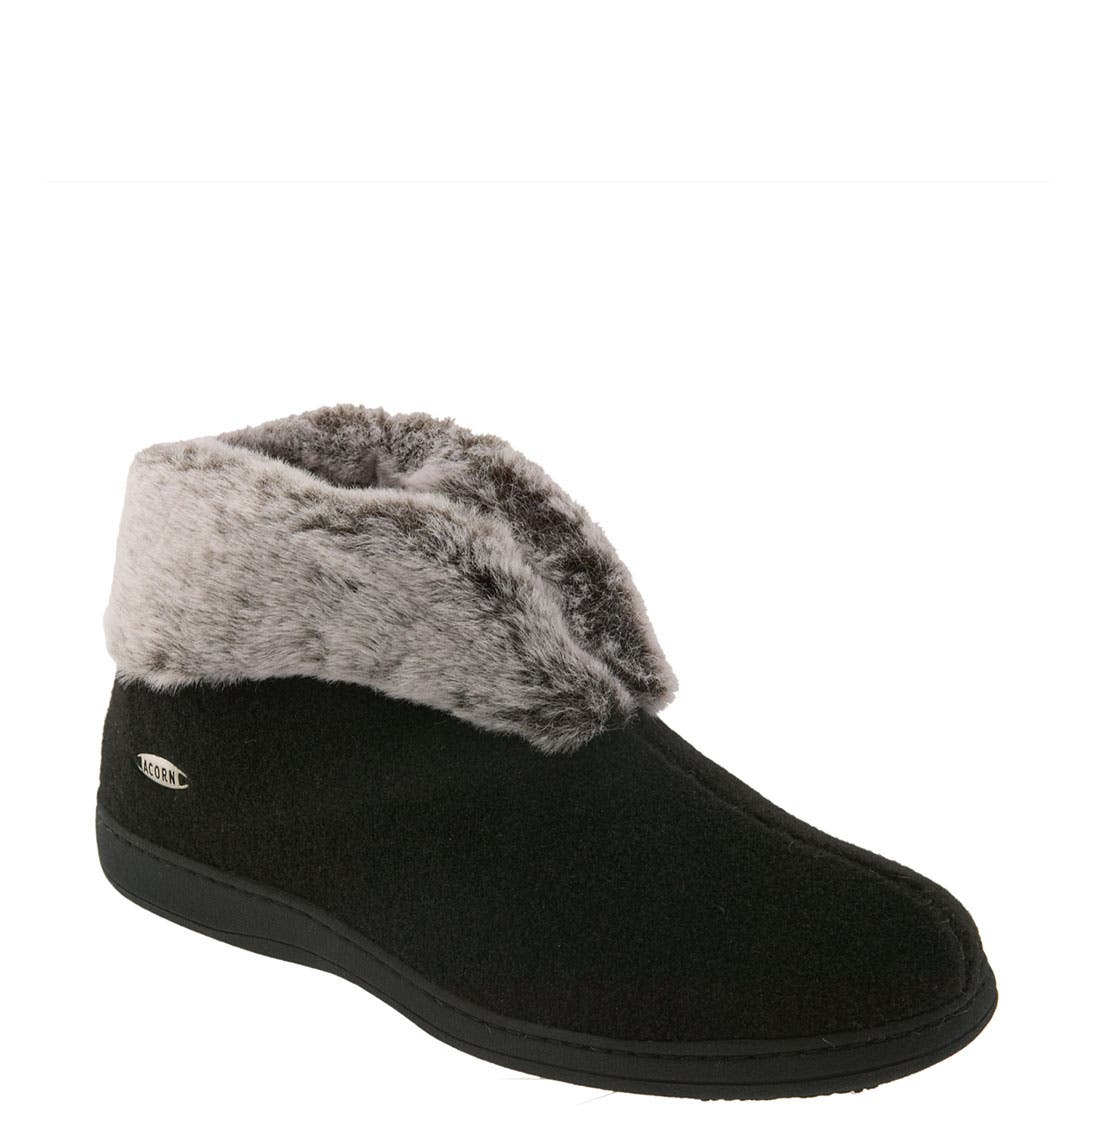 'Chinchilla' Slipper,                         Main,                         color, BLACK